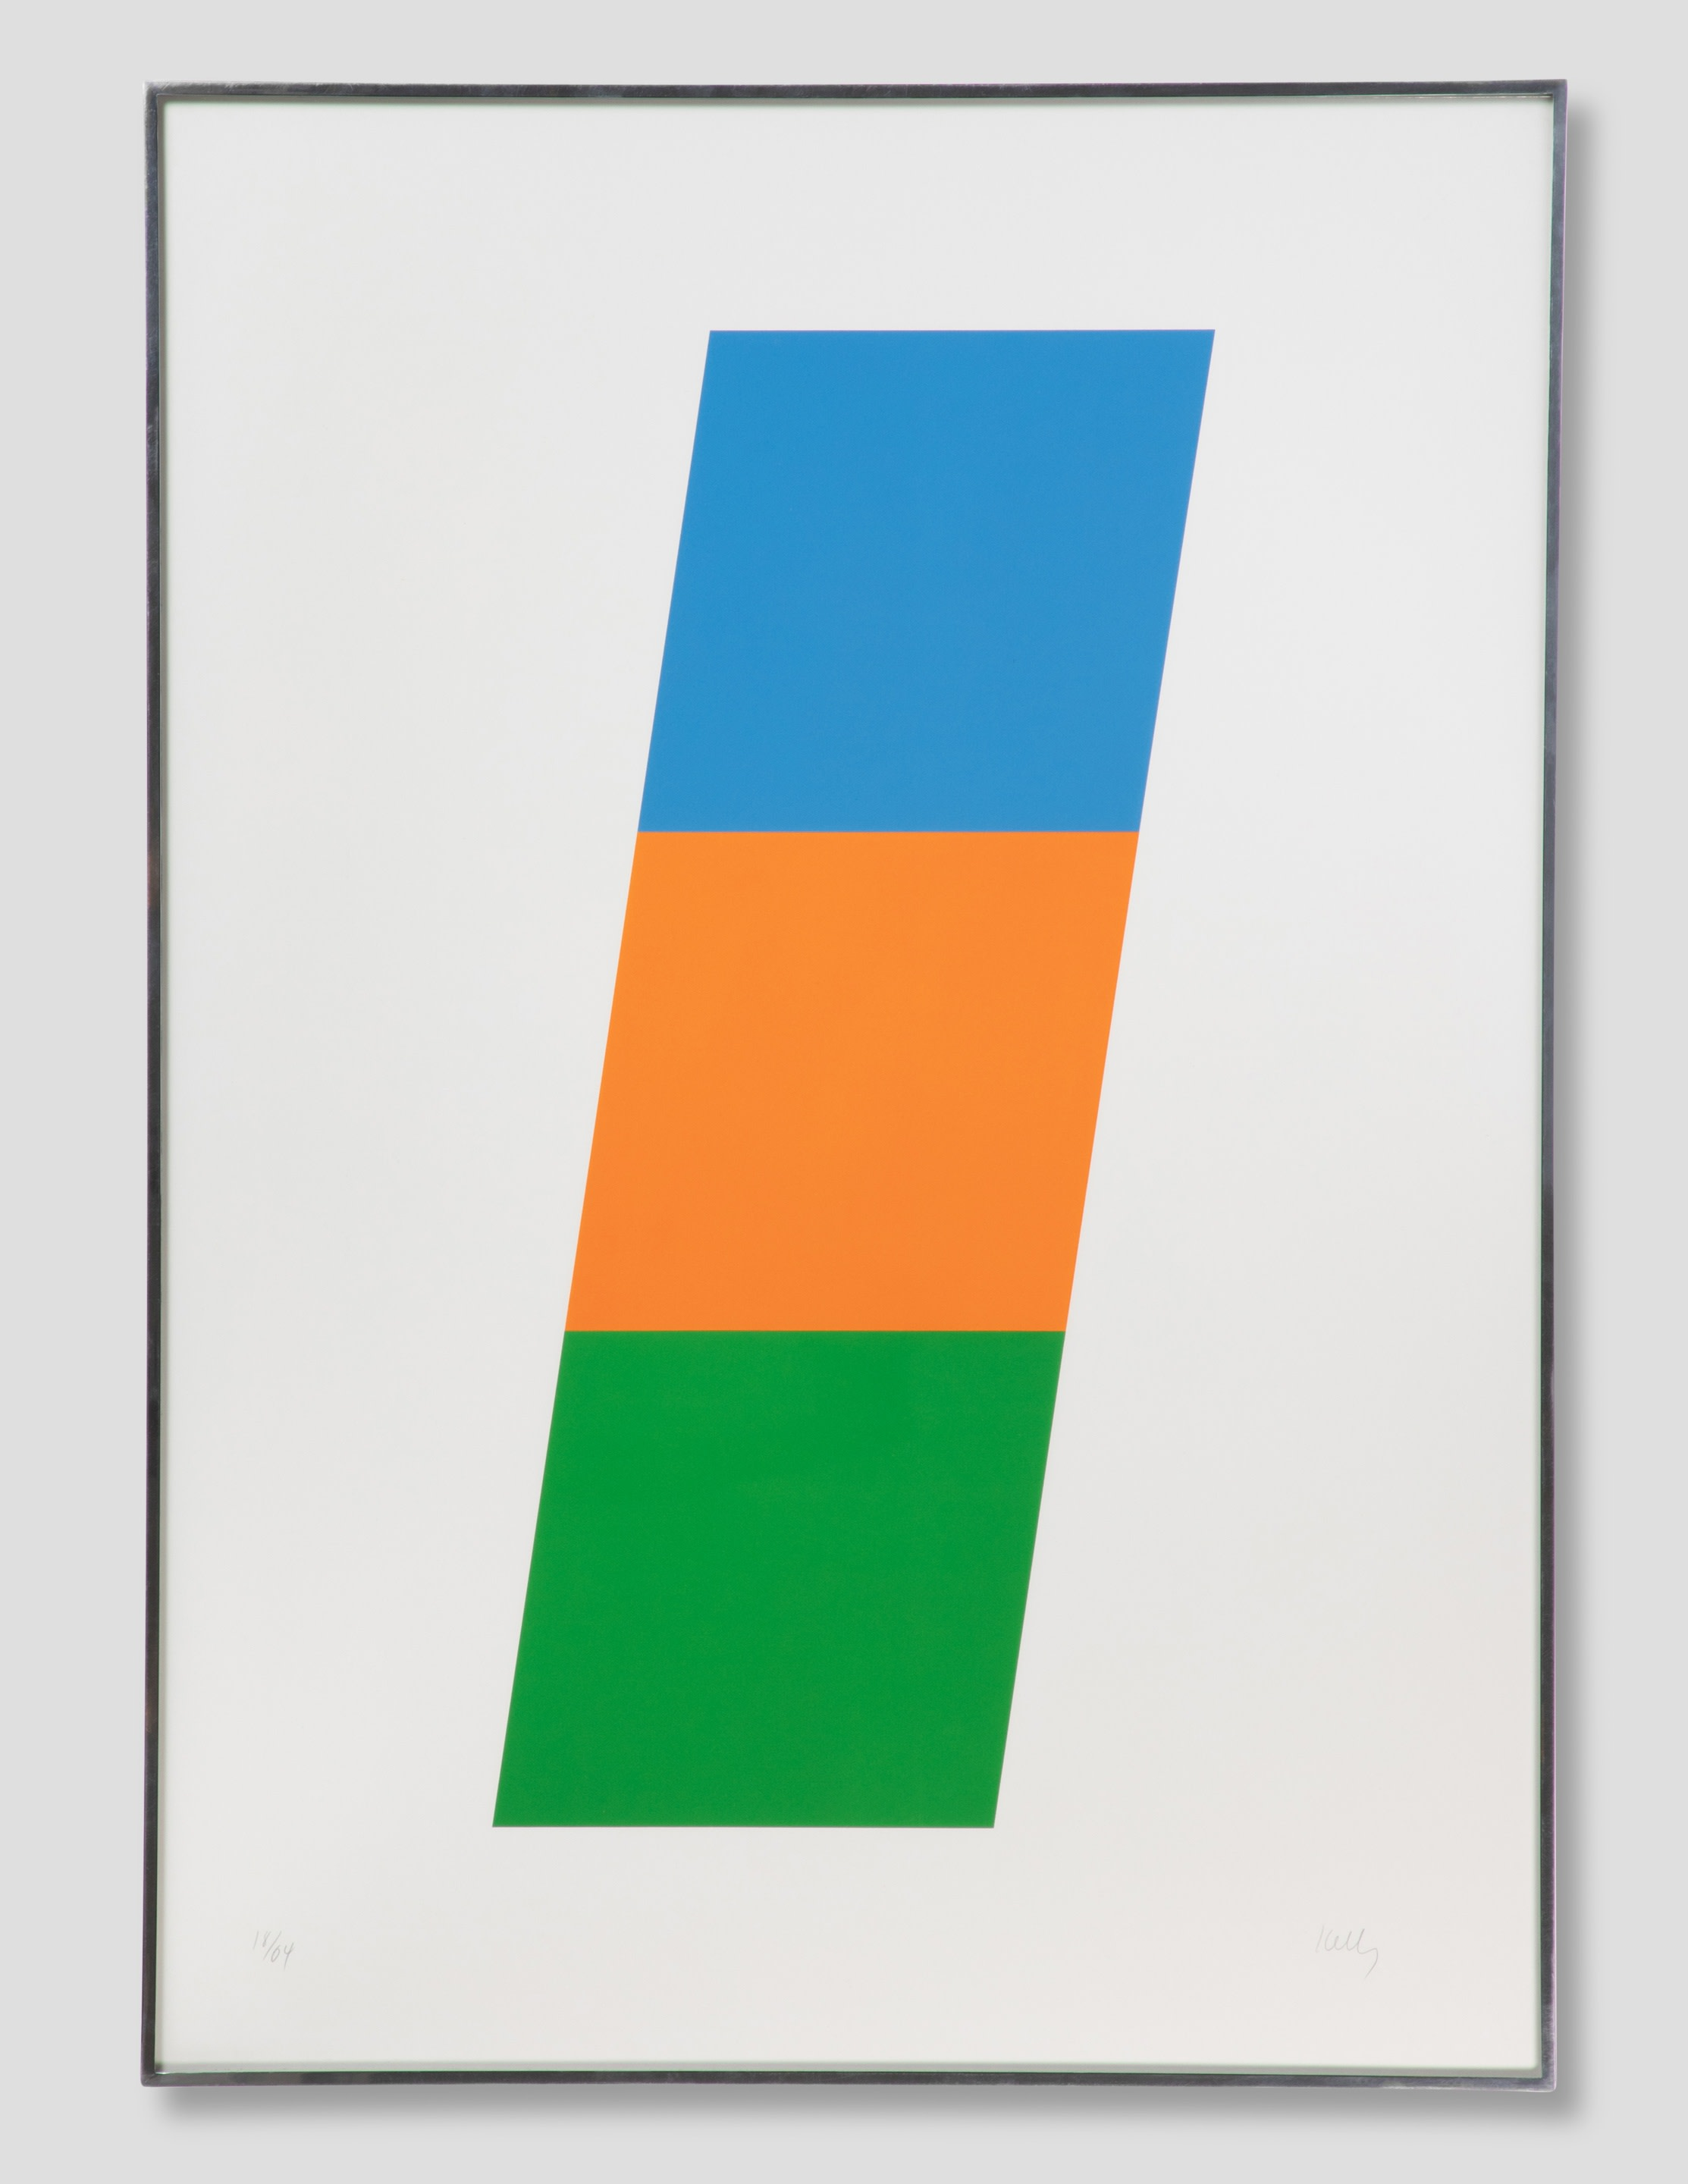 Artwork by Ellsworth Kelly at Zane Bennett Contemporary Art